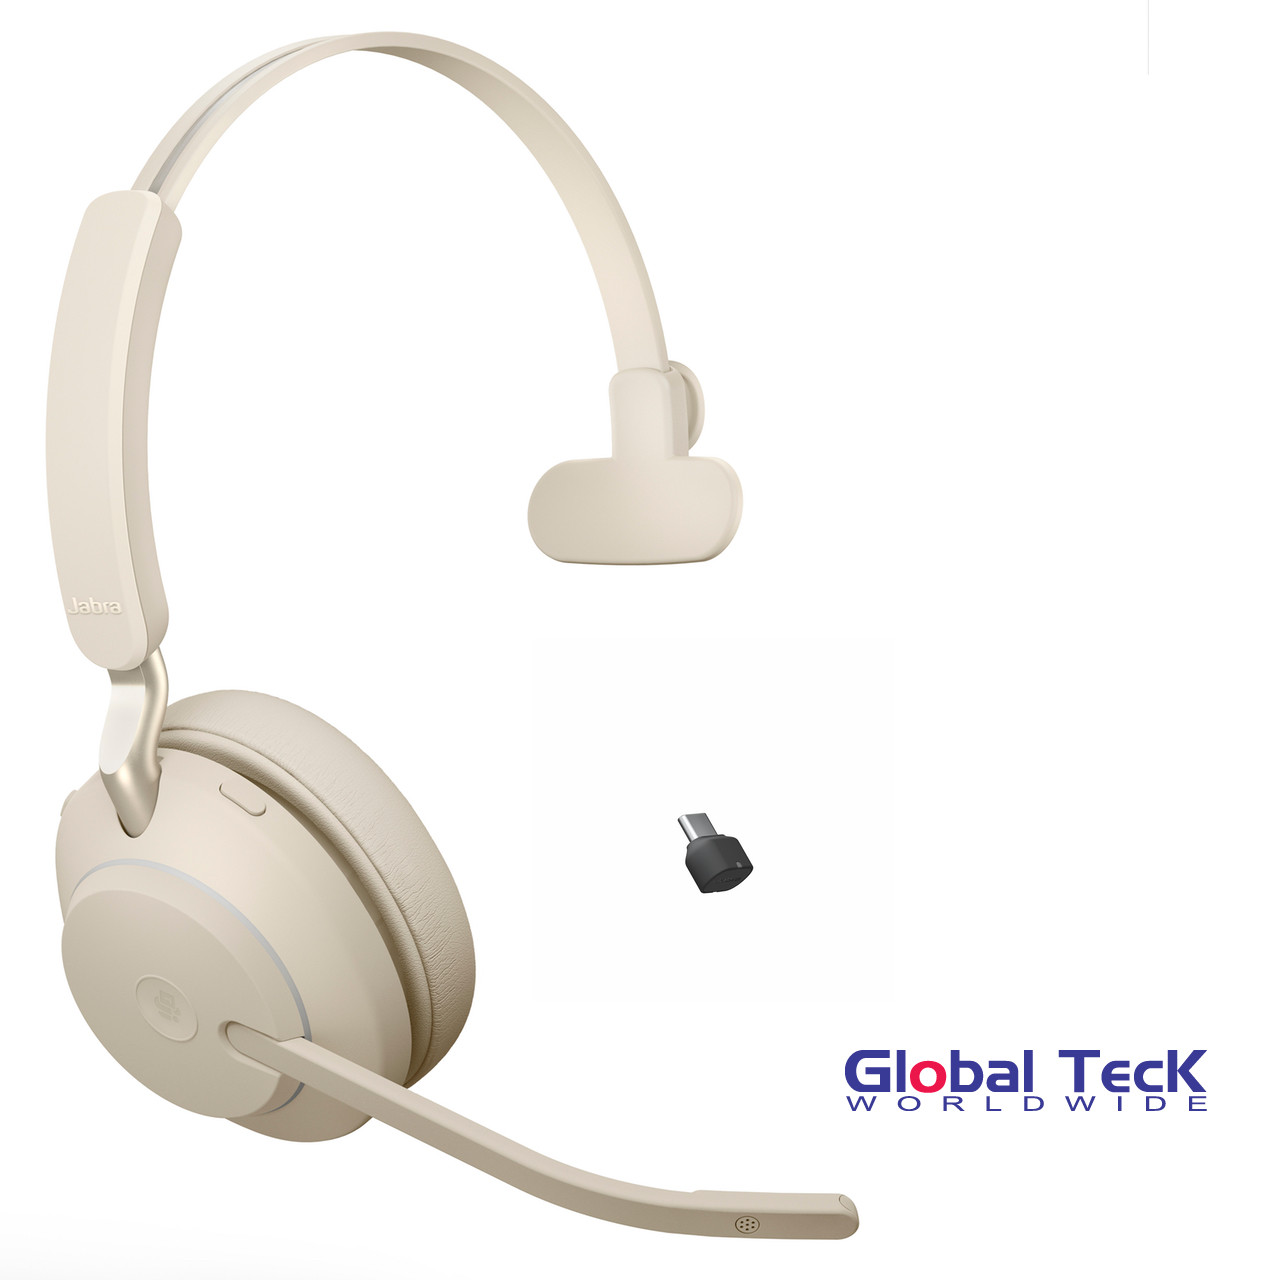 Jabra Evolve2 65 Mono Wireless Headset Beige Uc Version Includes Usb C Bluetooth Dongle Compatible With Softphones Smartphones Tablets Pc Mac 26599 889 898